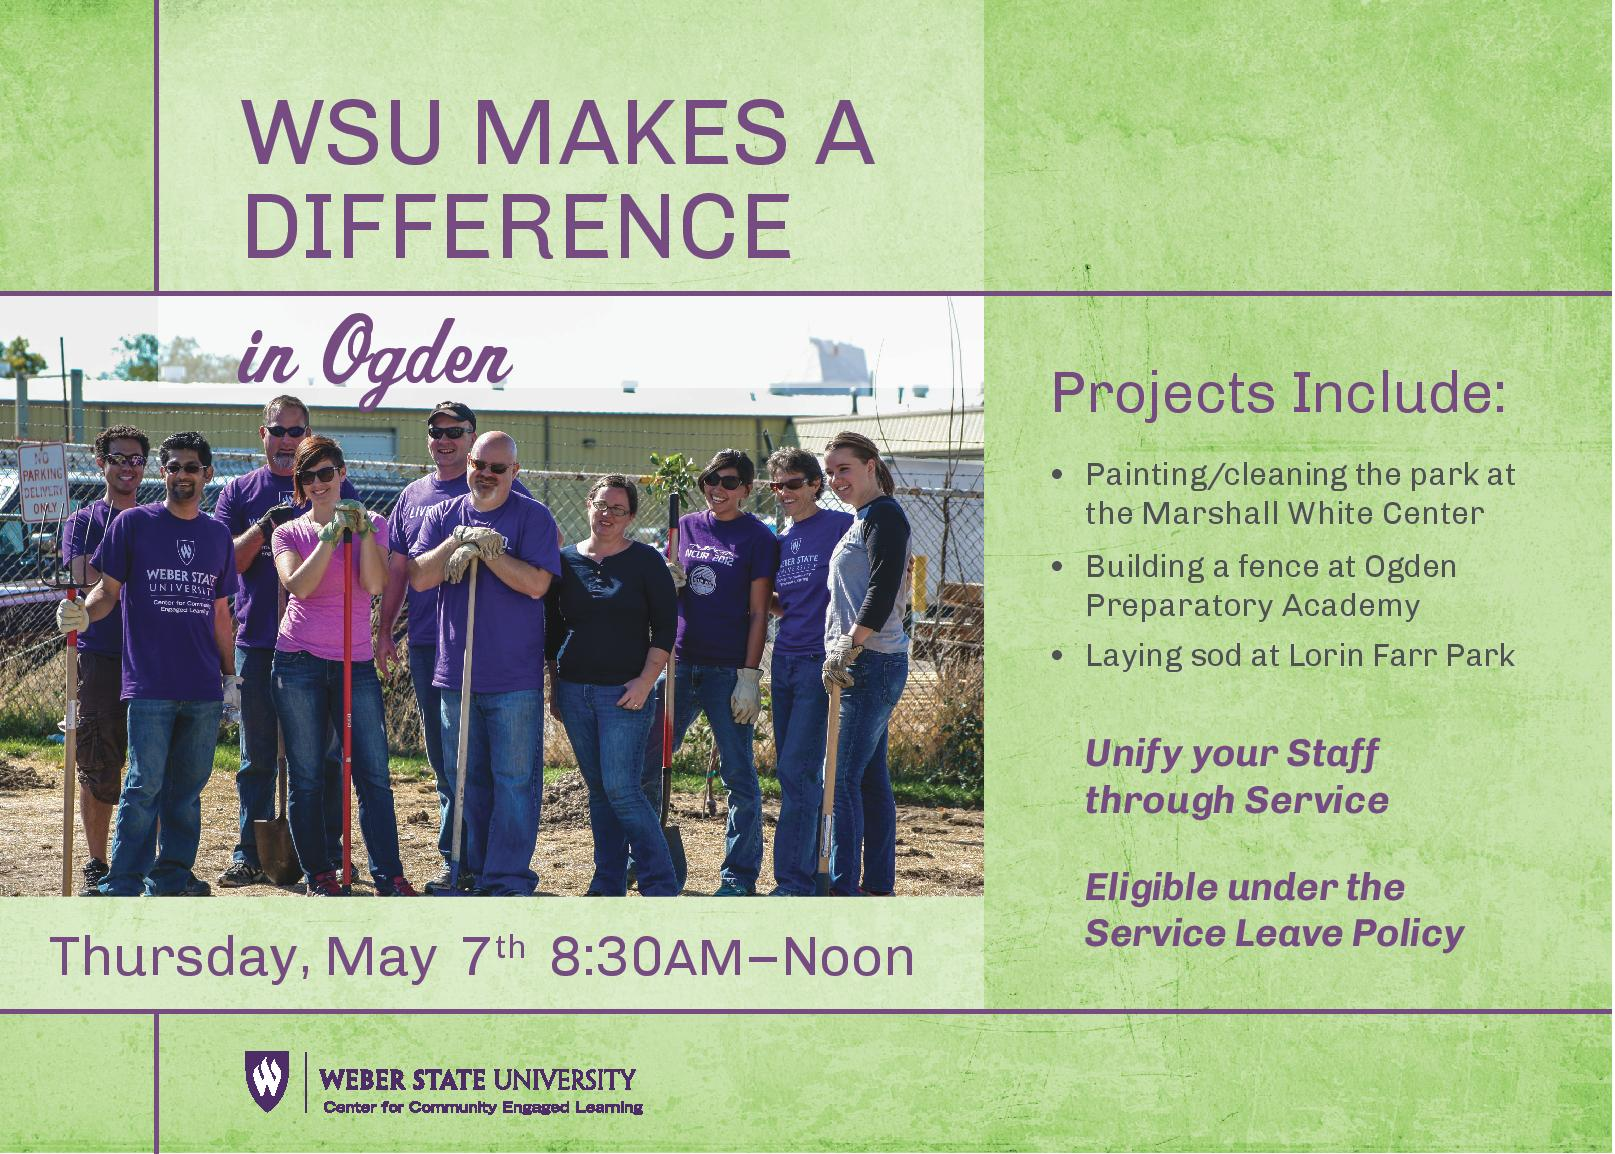 WSU Makes a Difference Day